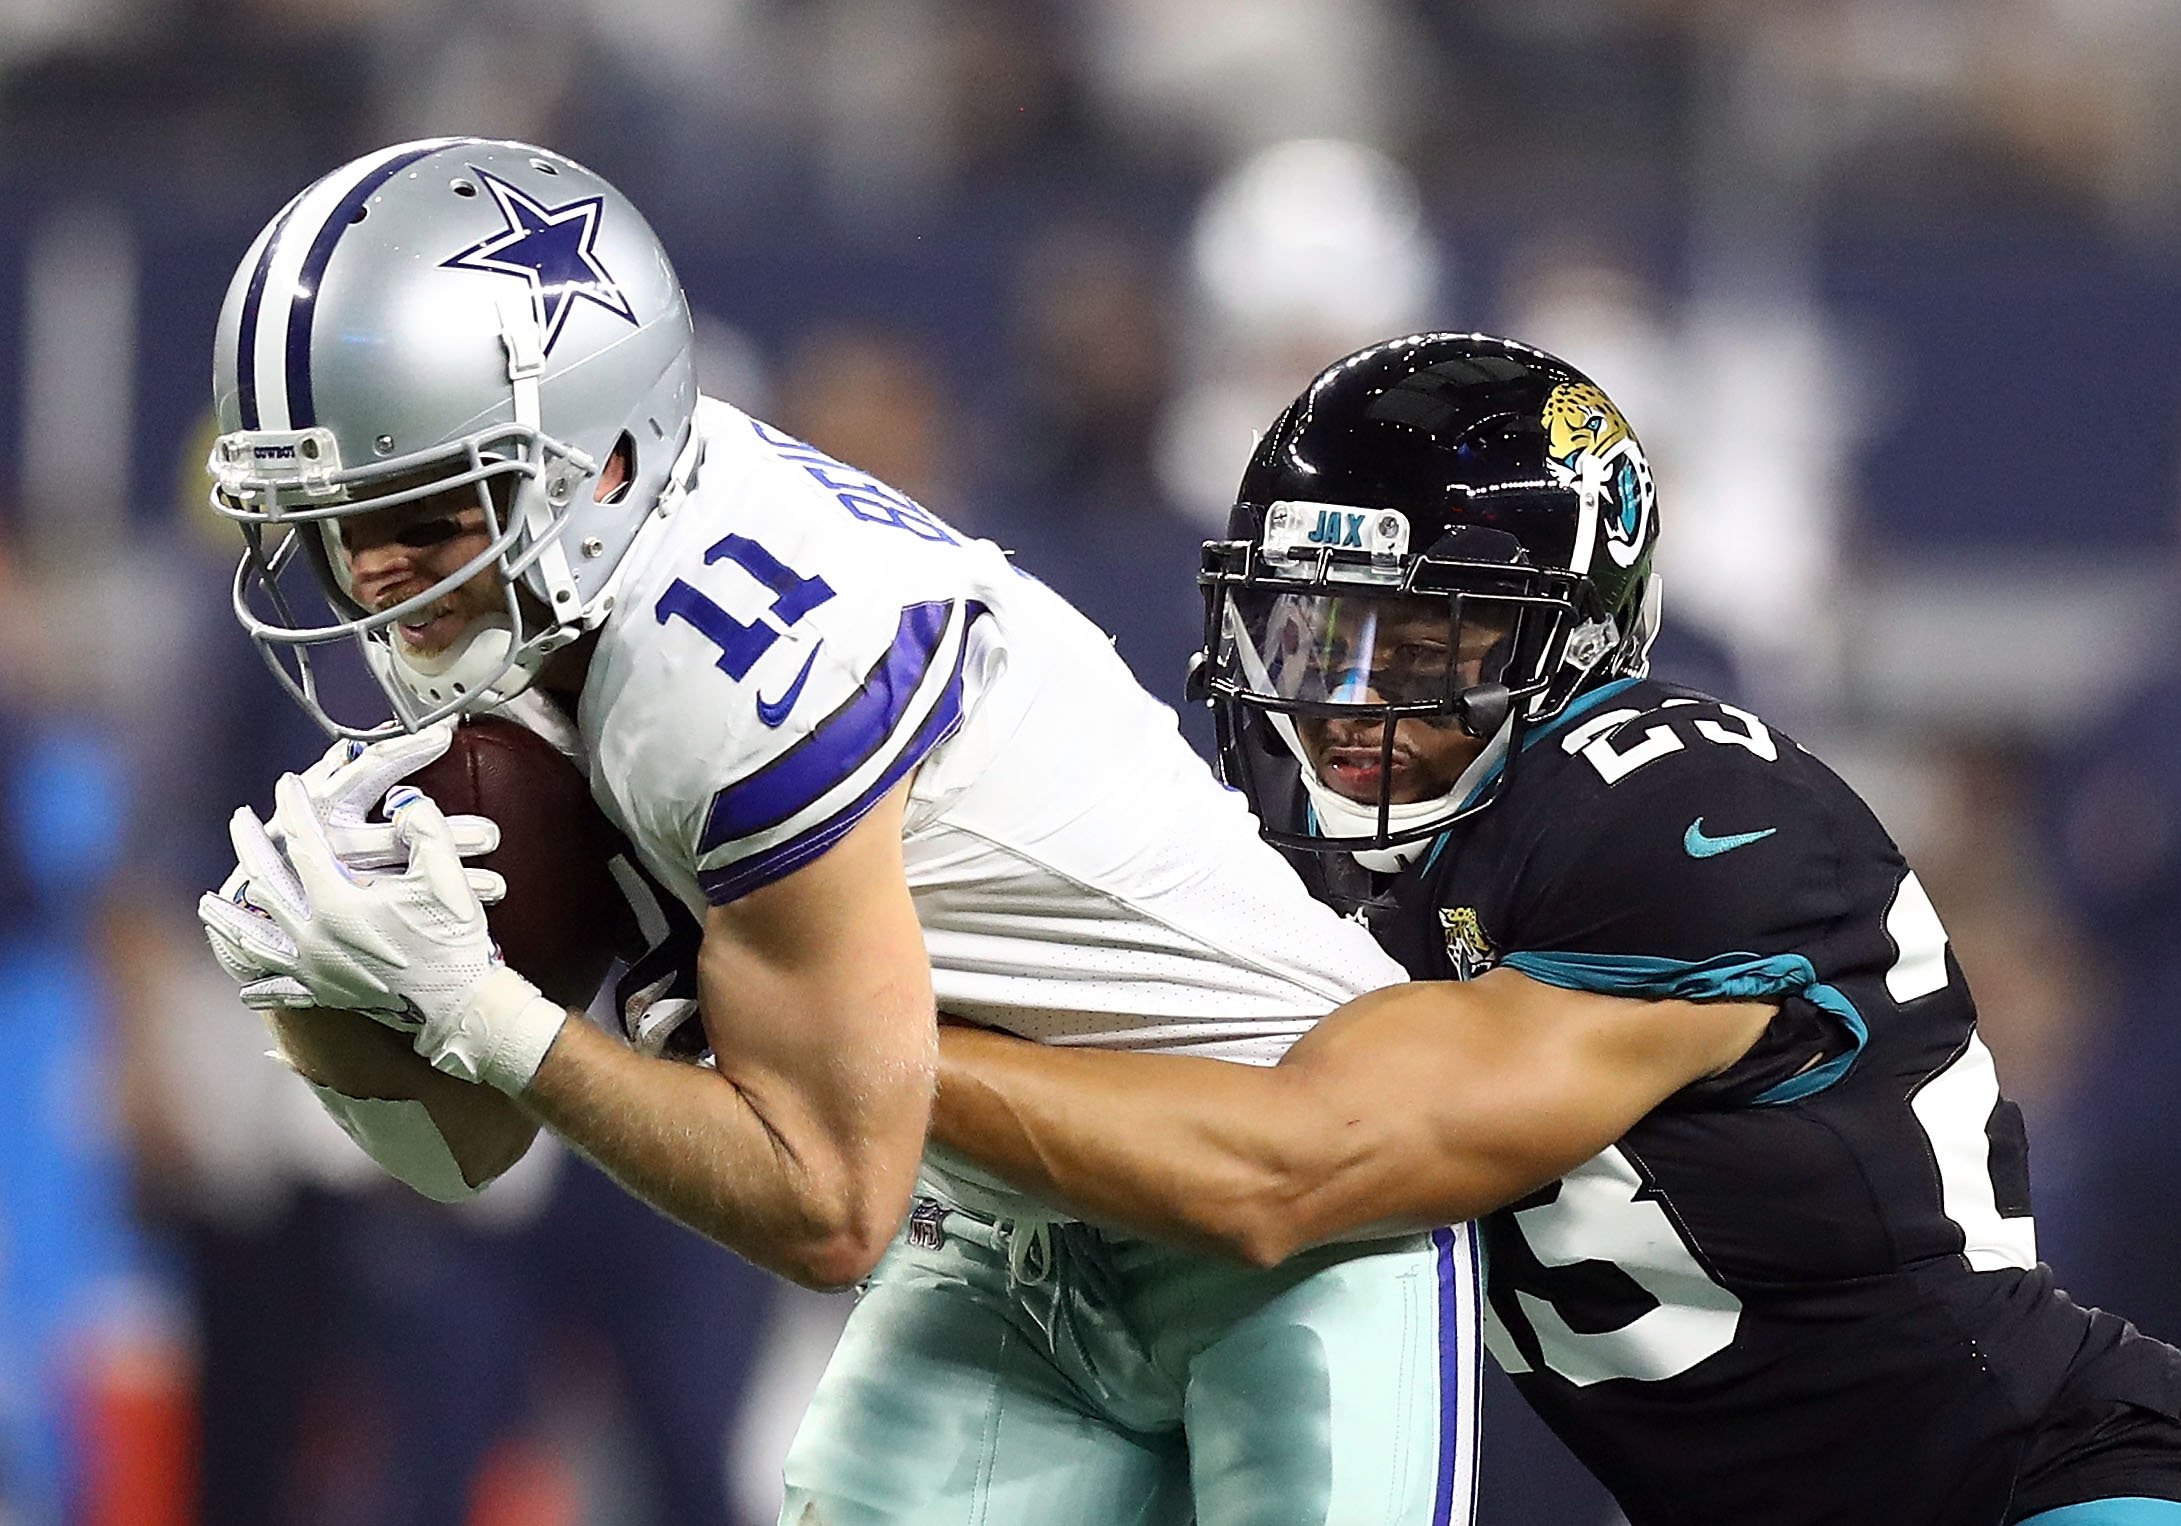 Cole Beasley #11 of the Dallas Cowboys gets tackled by Tyler Patmon #23 of the Jacksonville Jaguars in the second quarter of a game at AT&T Stadium on October 14, 2018 in Arlington, Texas.